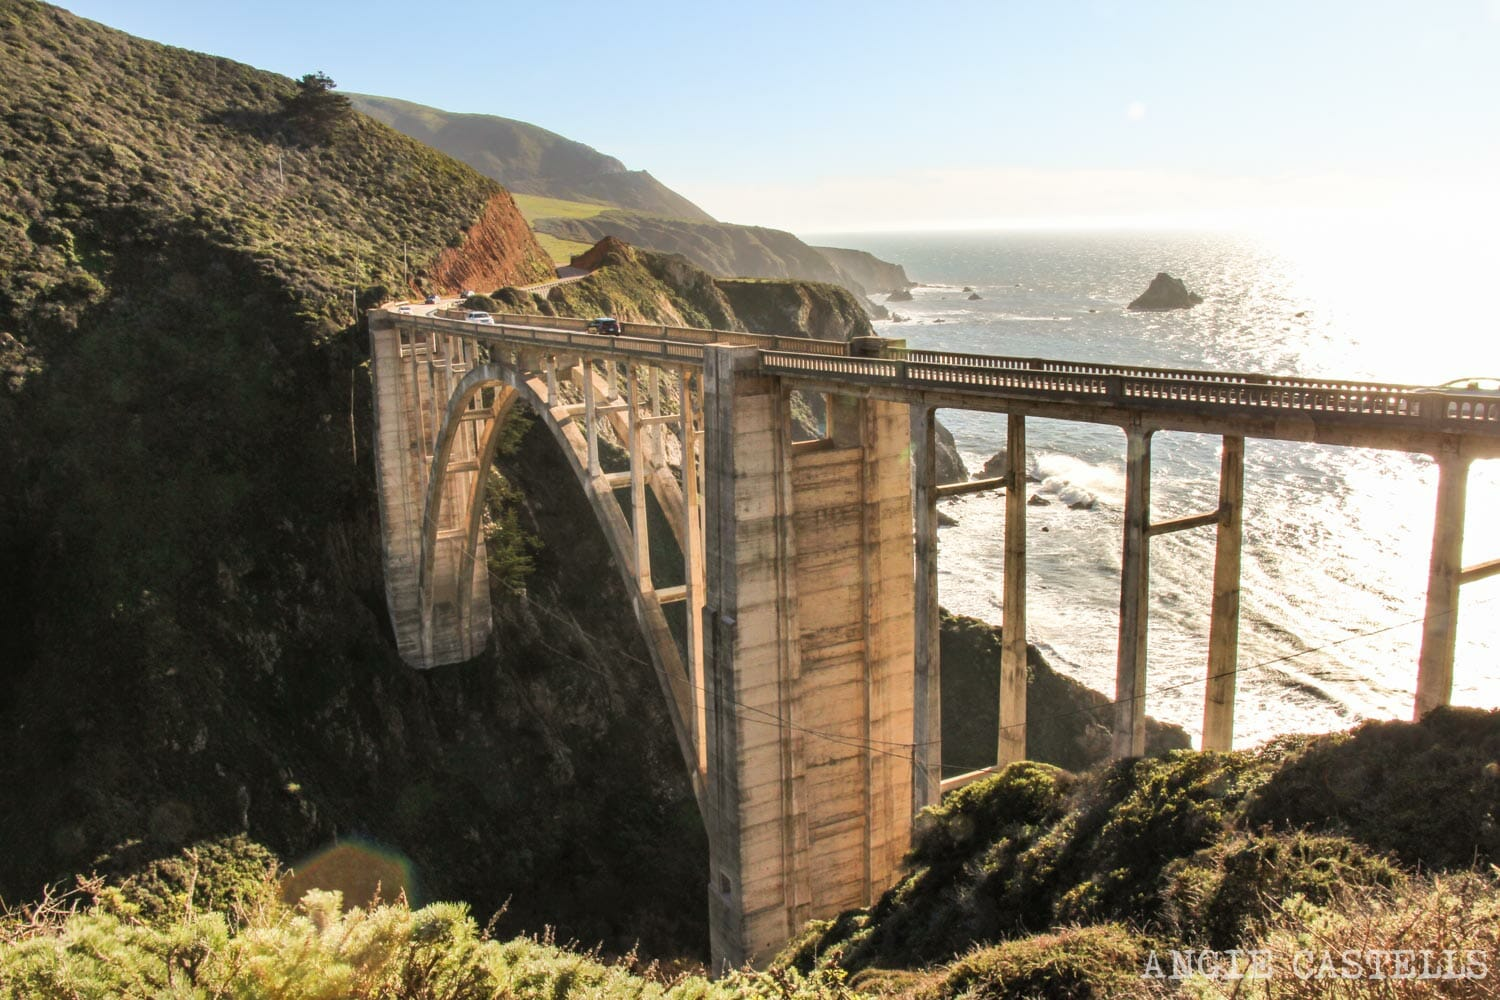 Ruta por el Big Sur y la Pacific Coast Highway, en California - Bixby Creek Bridge